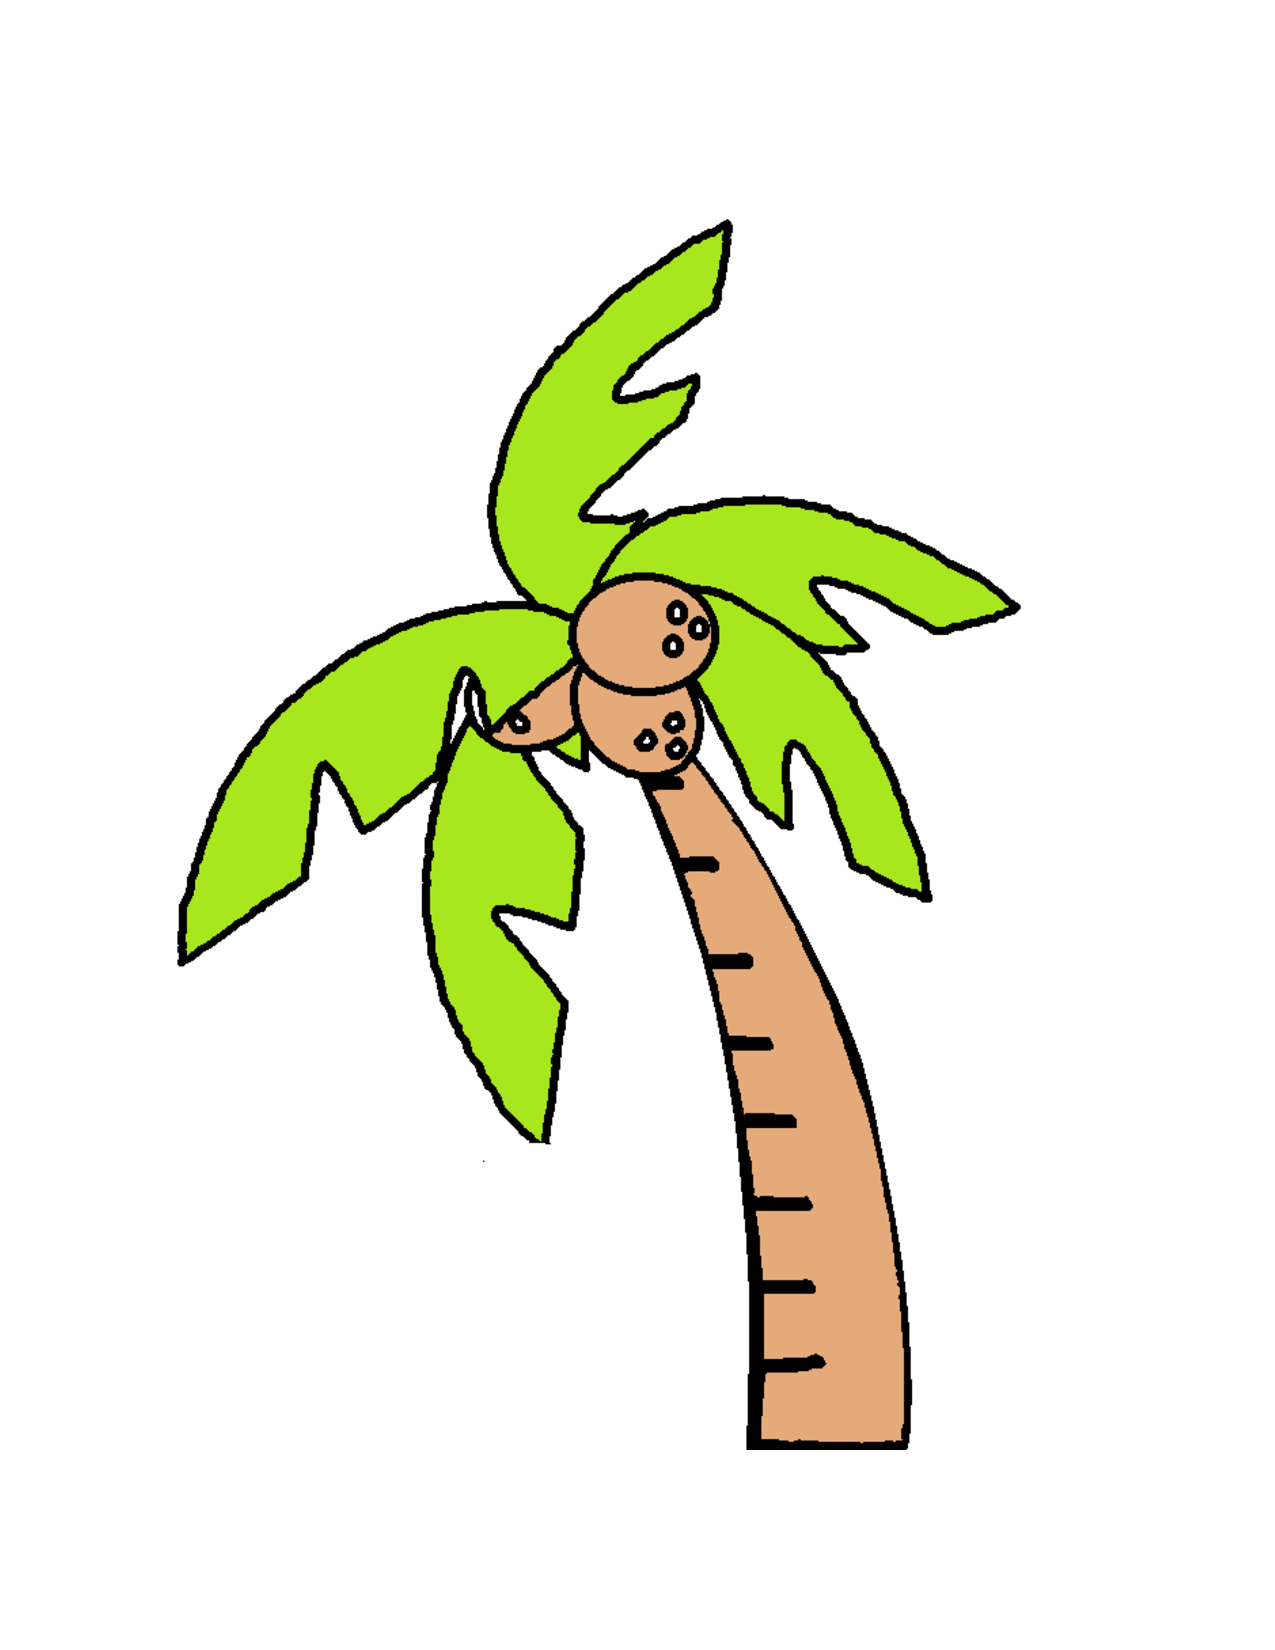 Coconut Tree Template - ClipArt Best